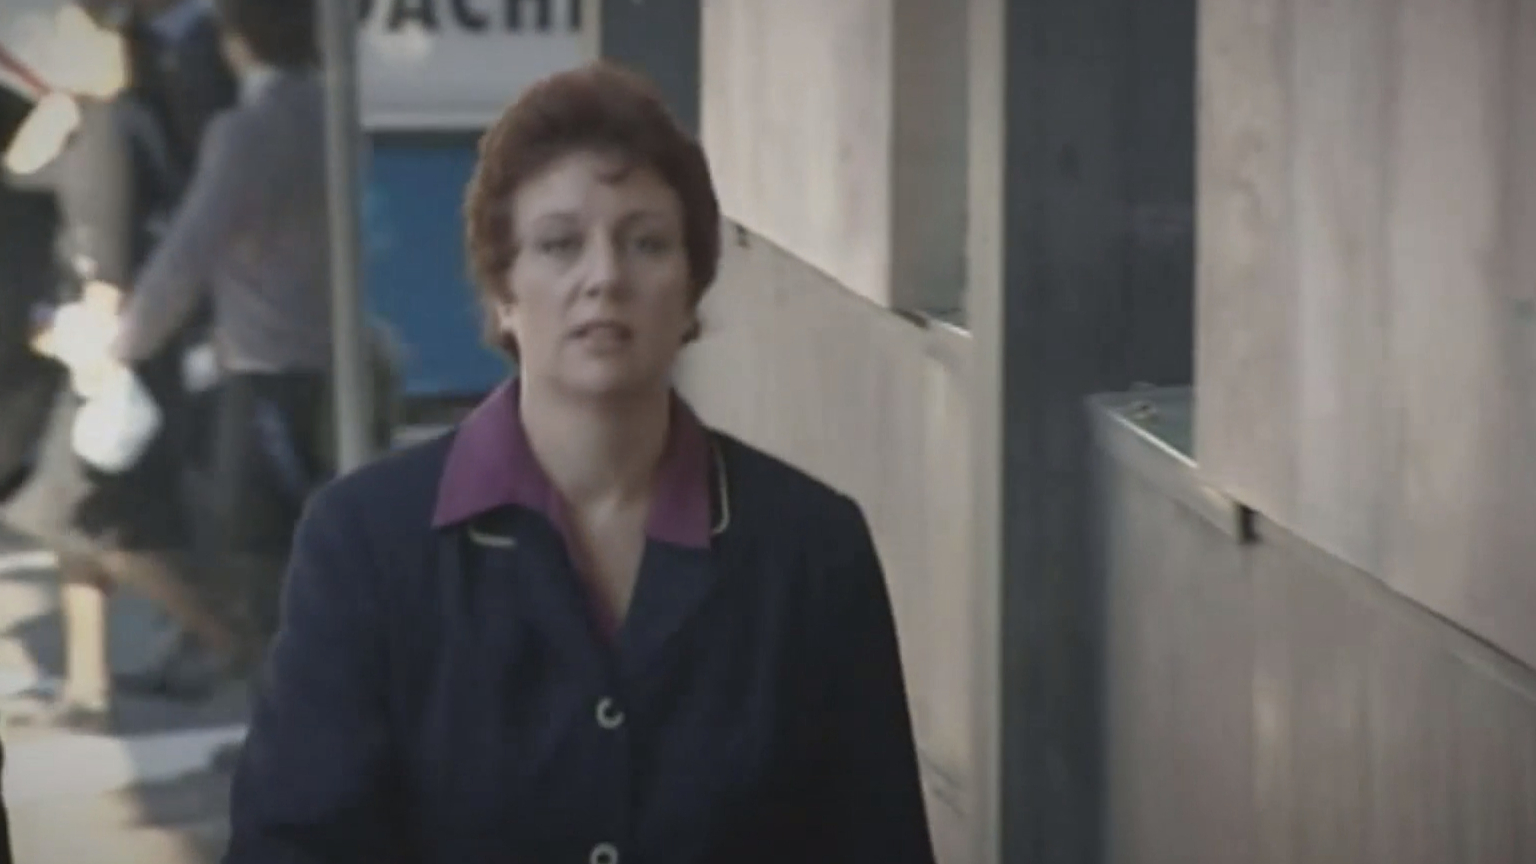 Scientists call for Kathleen Folbigg's release